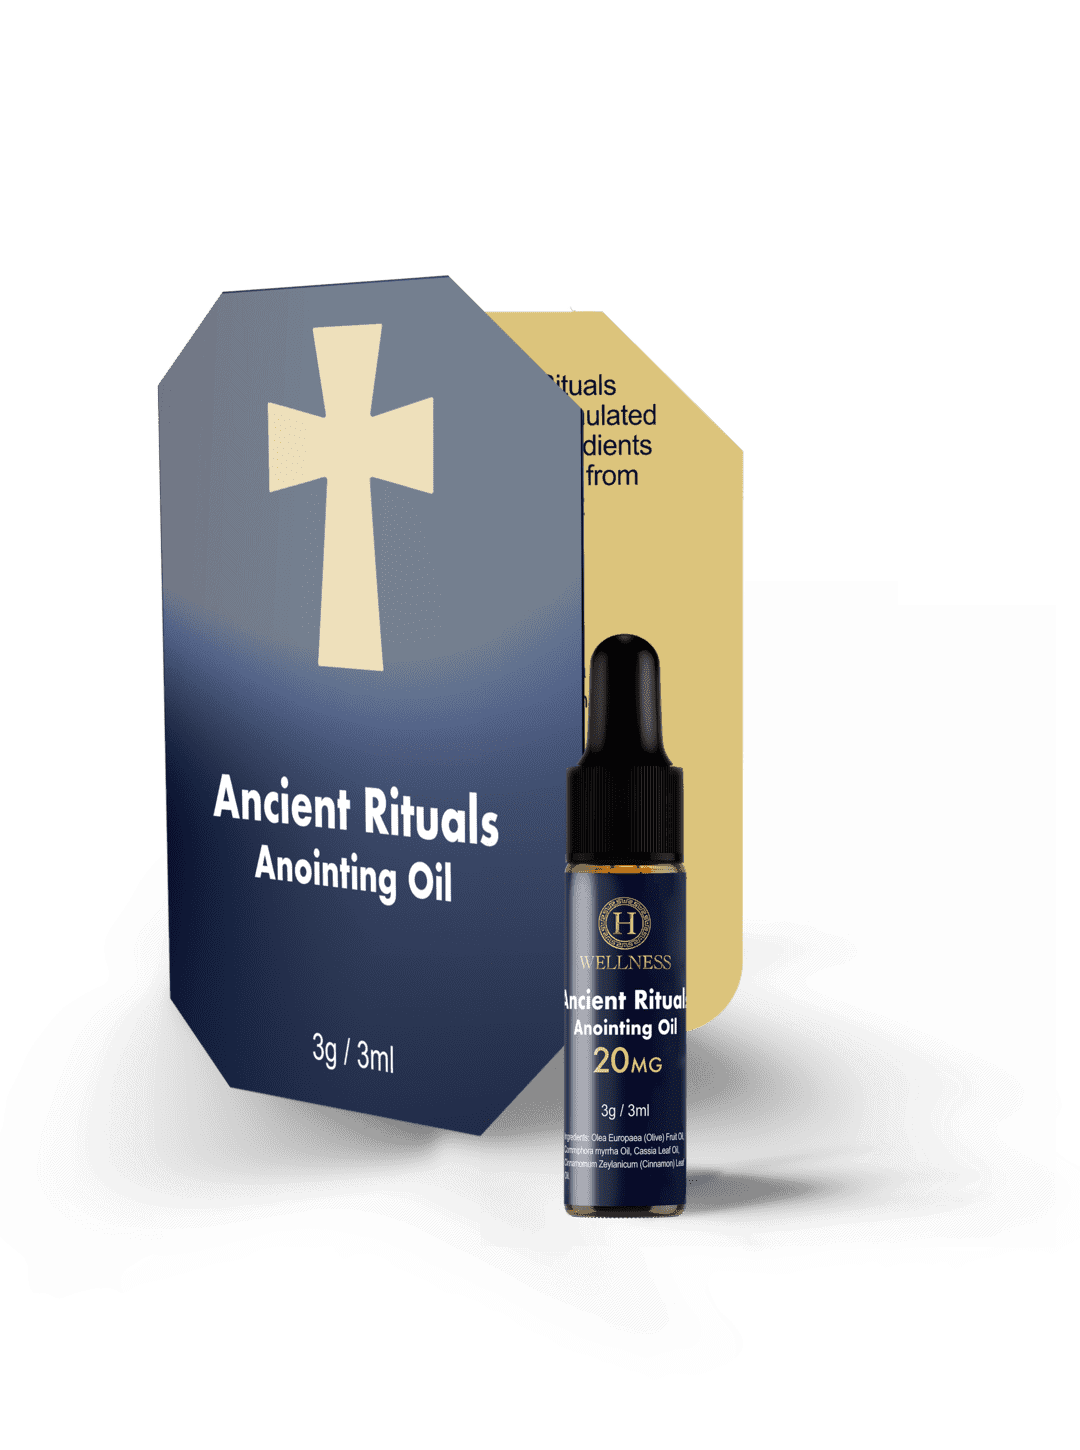 Ancient Ritual Oil: A Natural Solution for Enhanced Spiritual Wellness 2